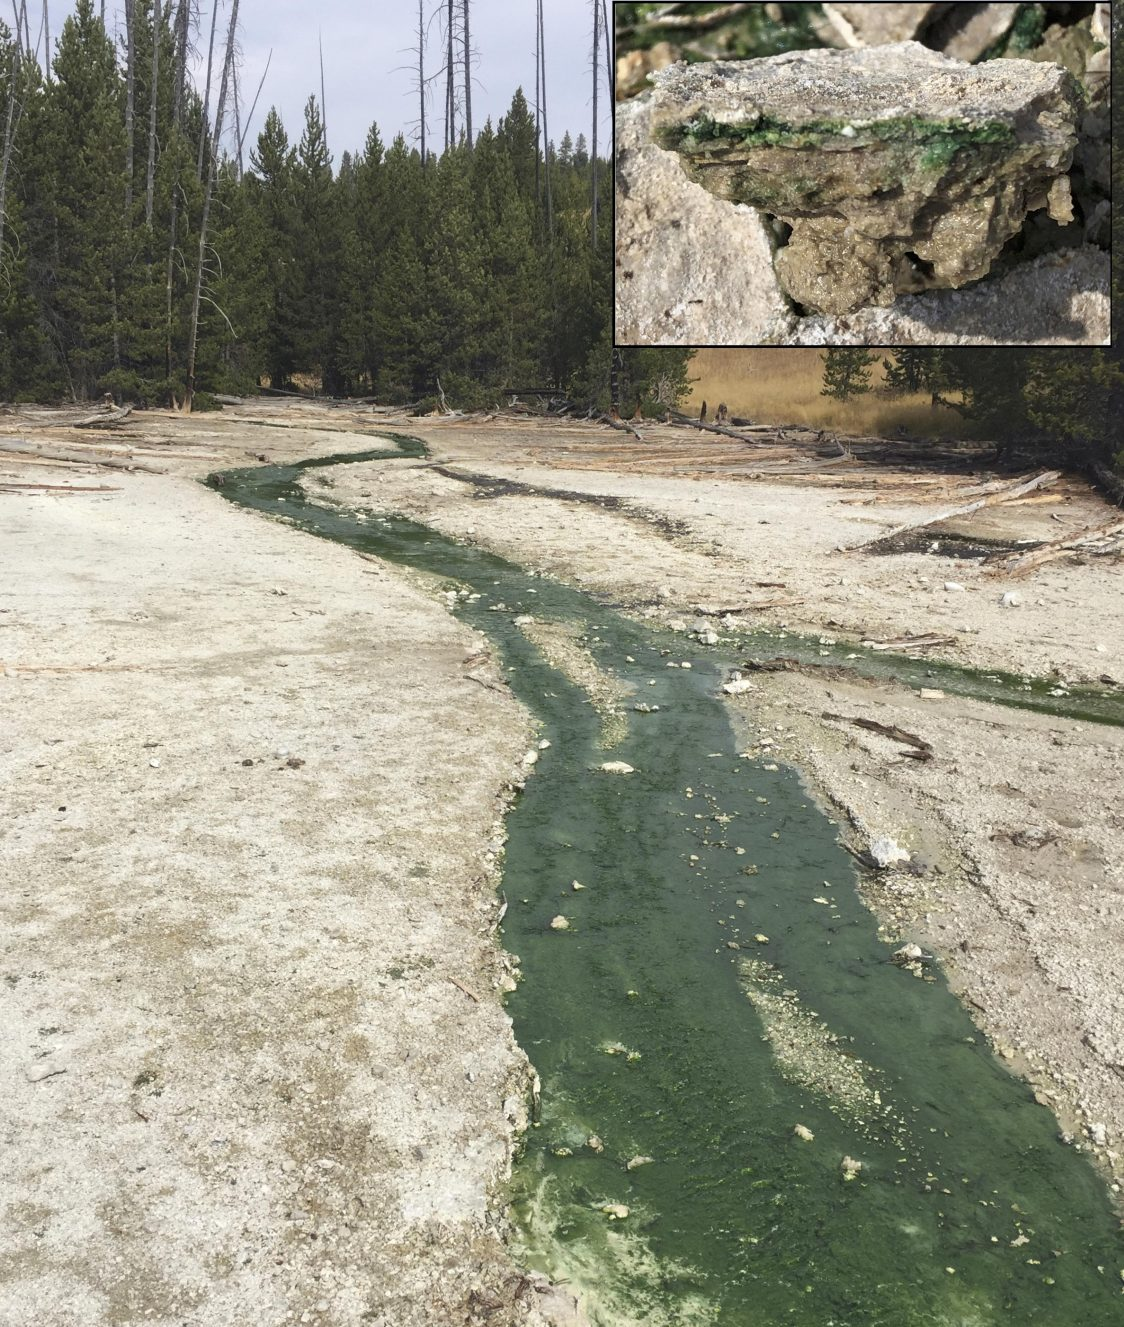 Rutgers-led team will study algae from hot springs worldwide, including in Yellowstone National Park